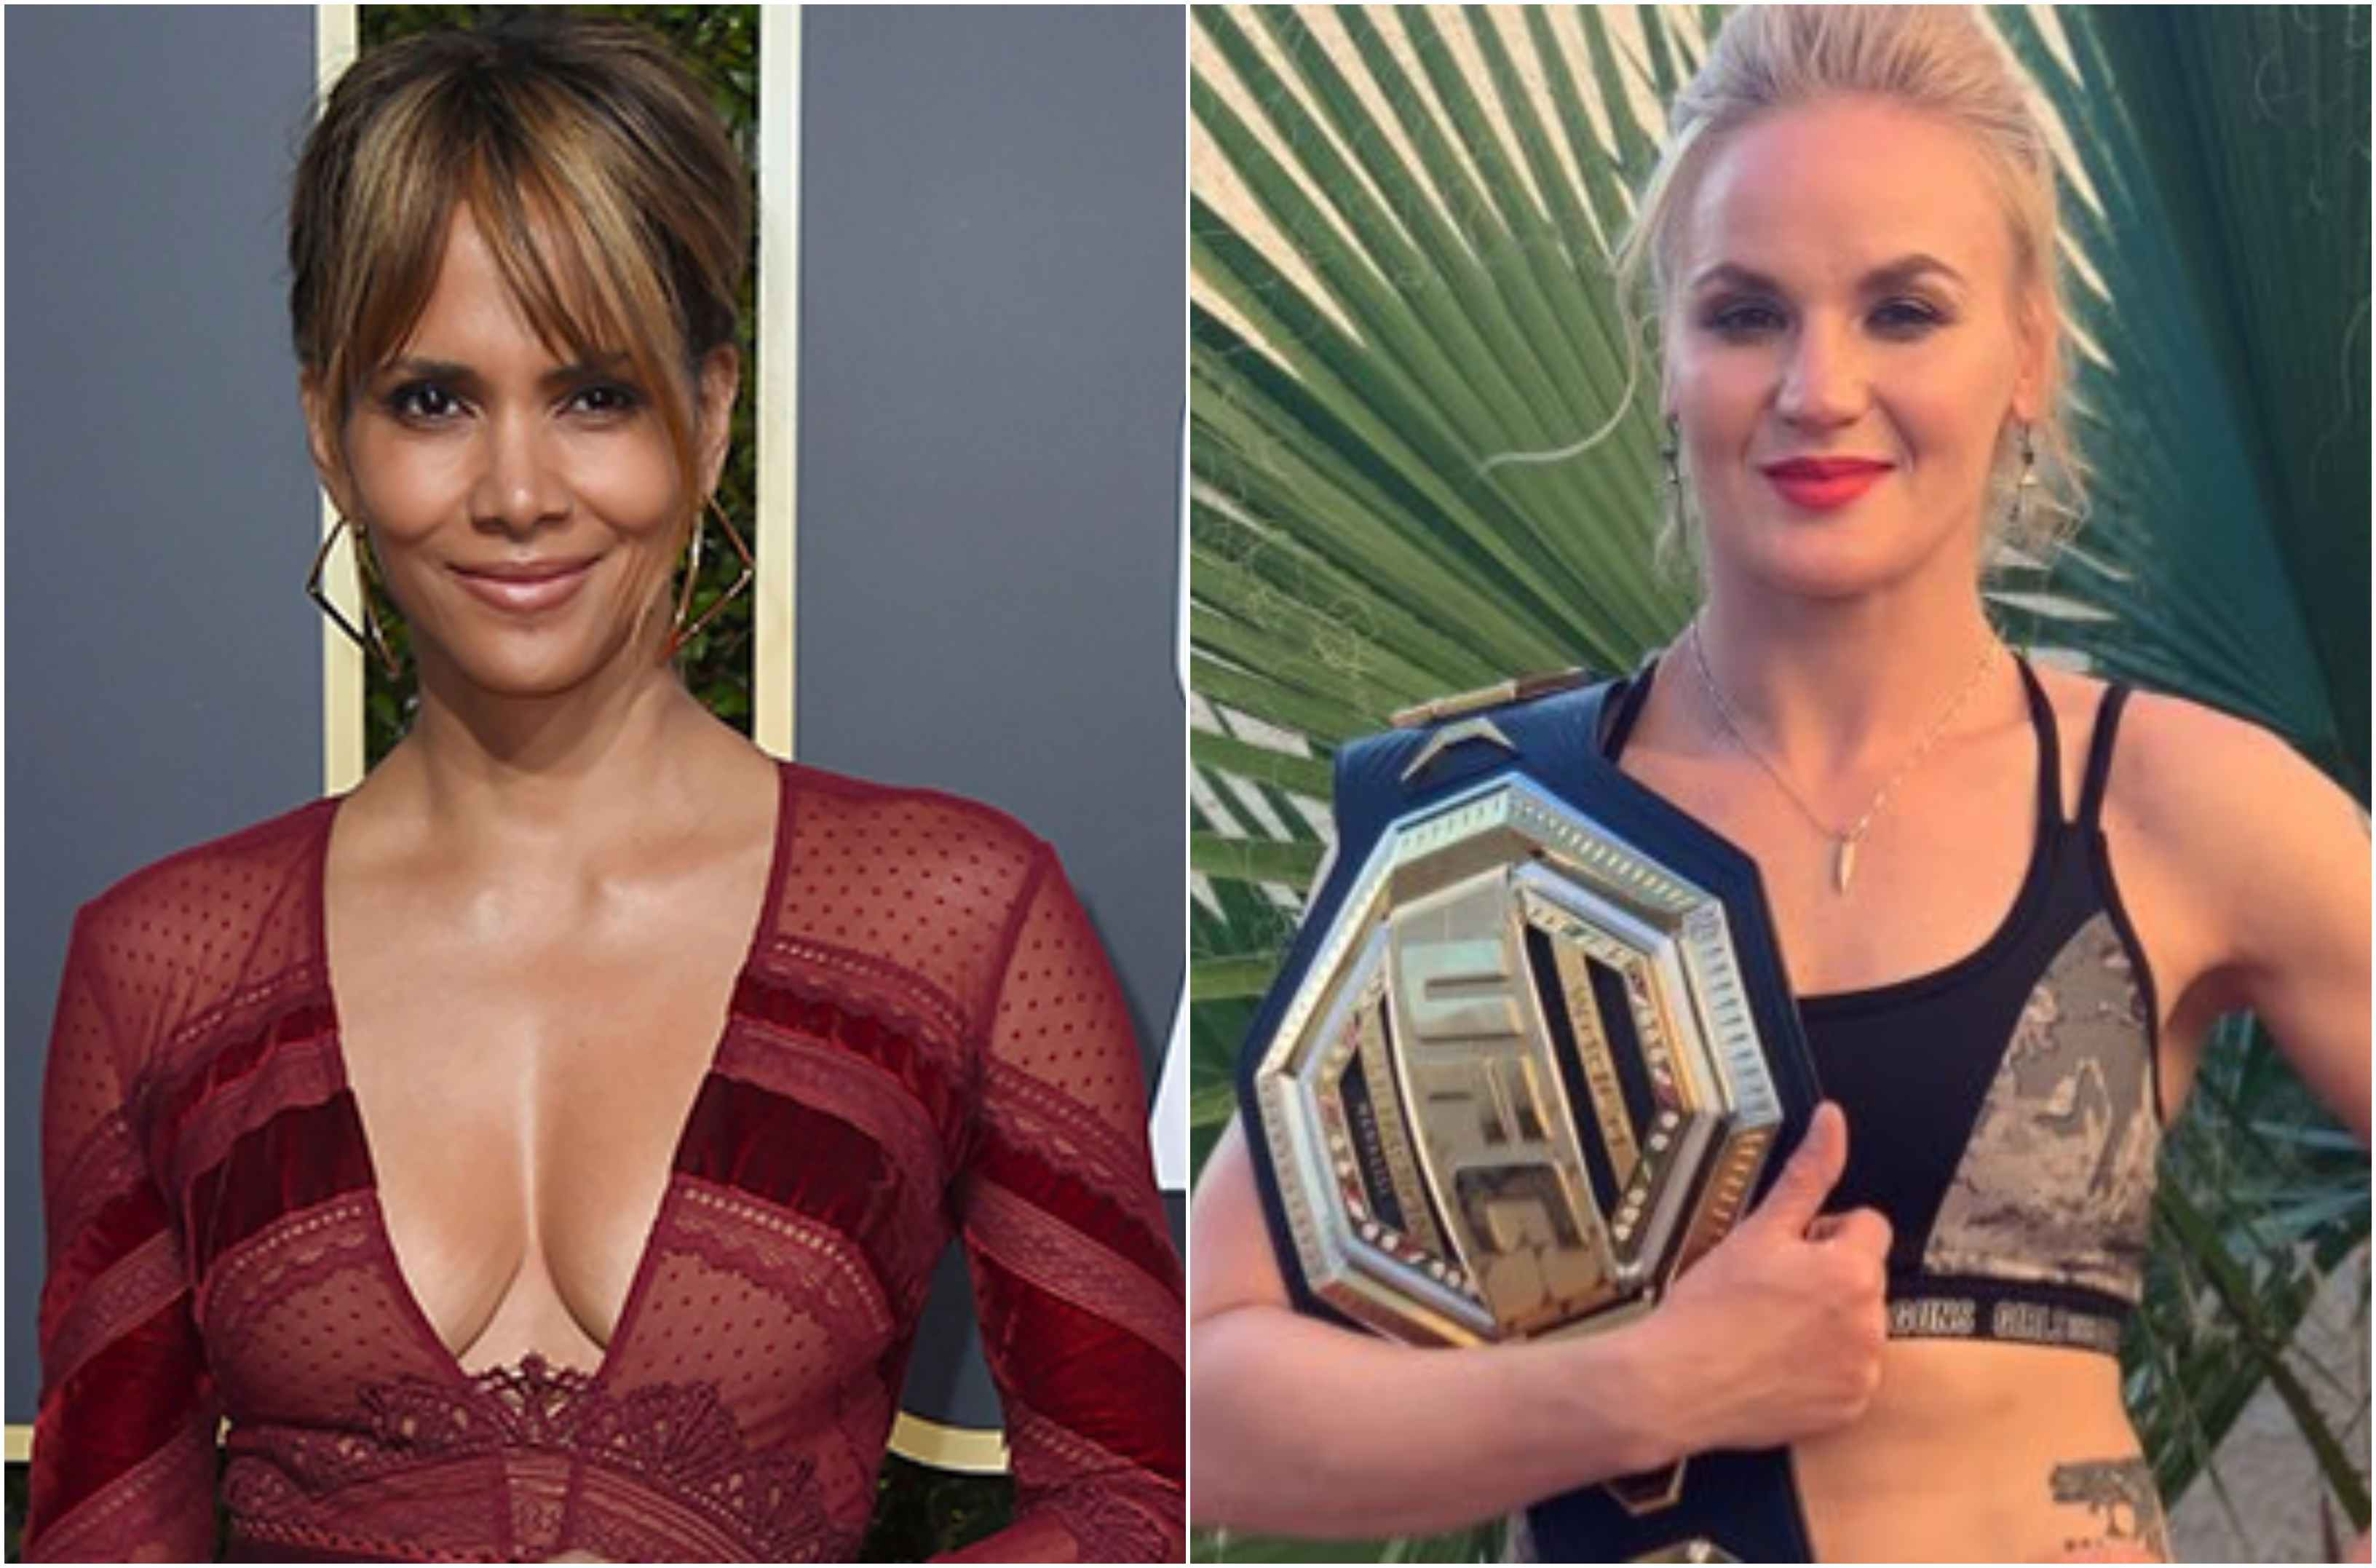 UFC News: Watch Valentina Shevchenko's interaction with Halle Berry after UFC 247 title defence - Valentina